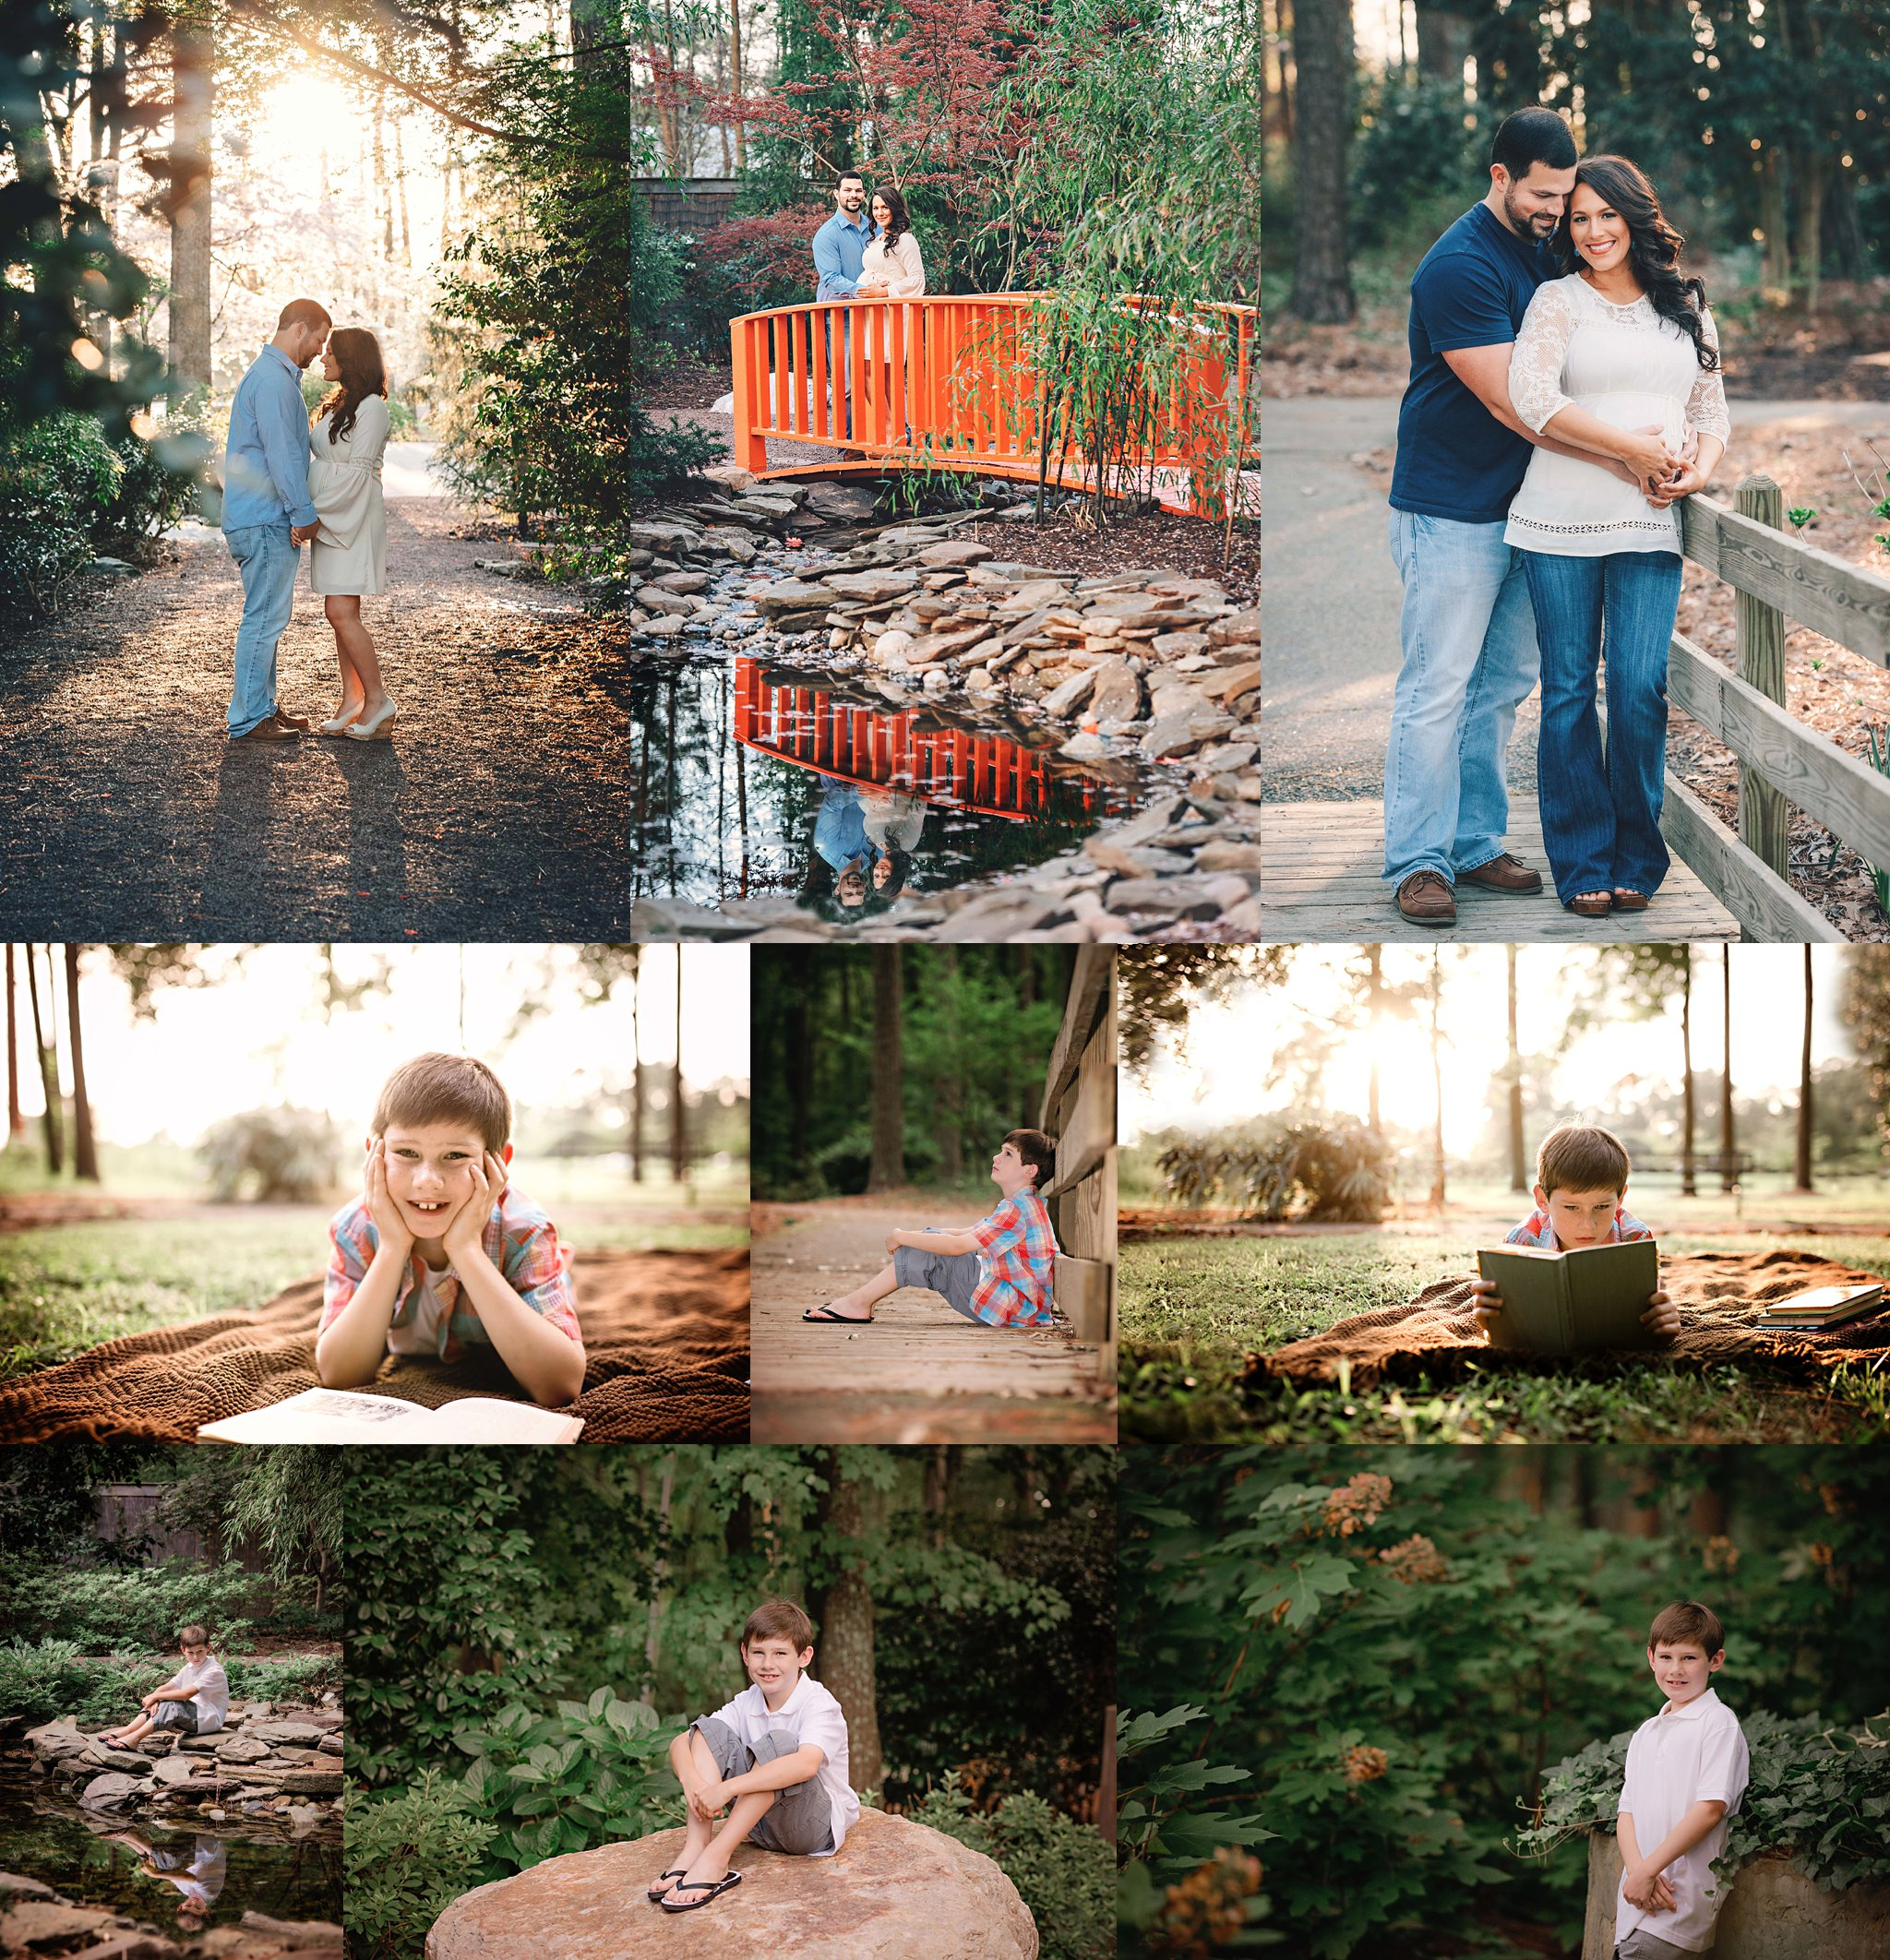 Red-wing-park-virginia-beach-photo-sessions-maternity-portraits-beautiful-garden-setting-hampton-roads-photographer